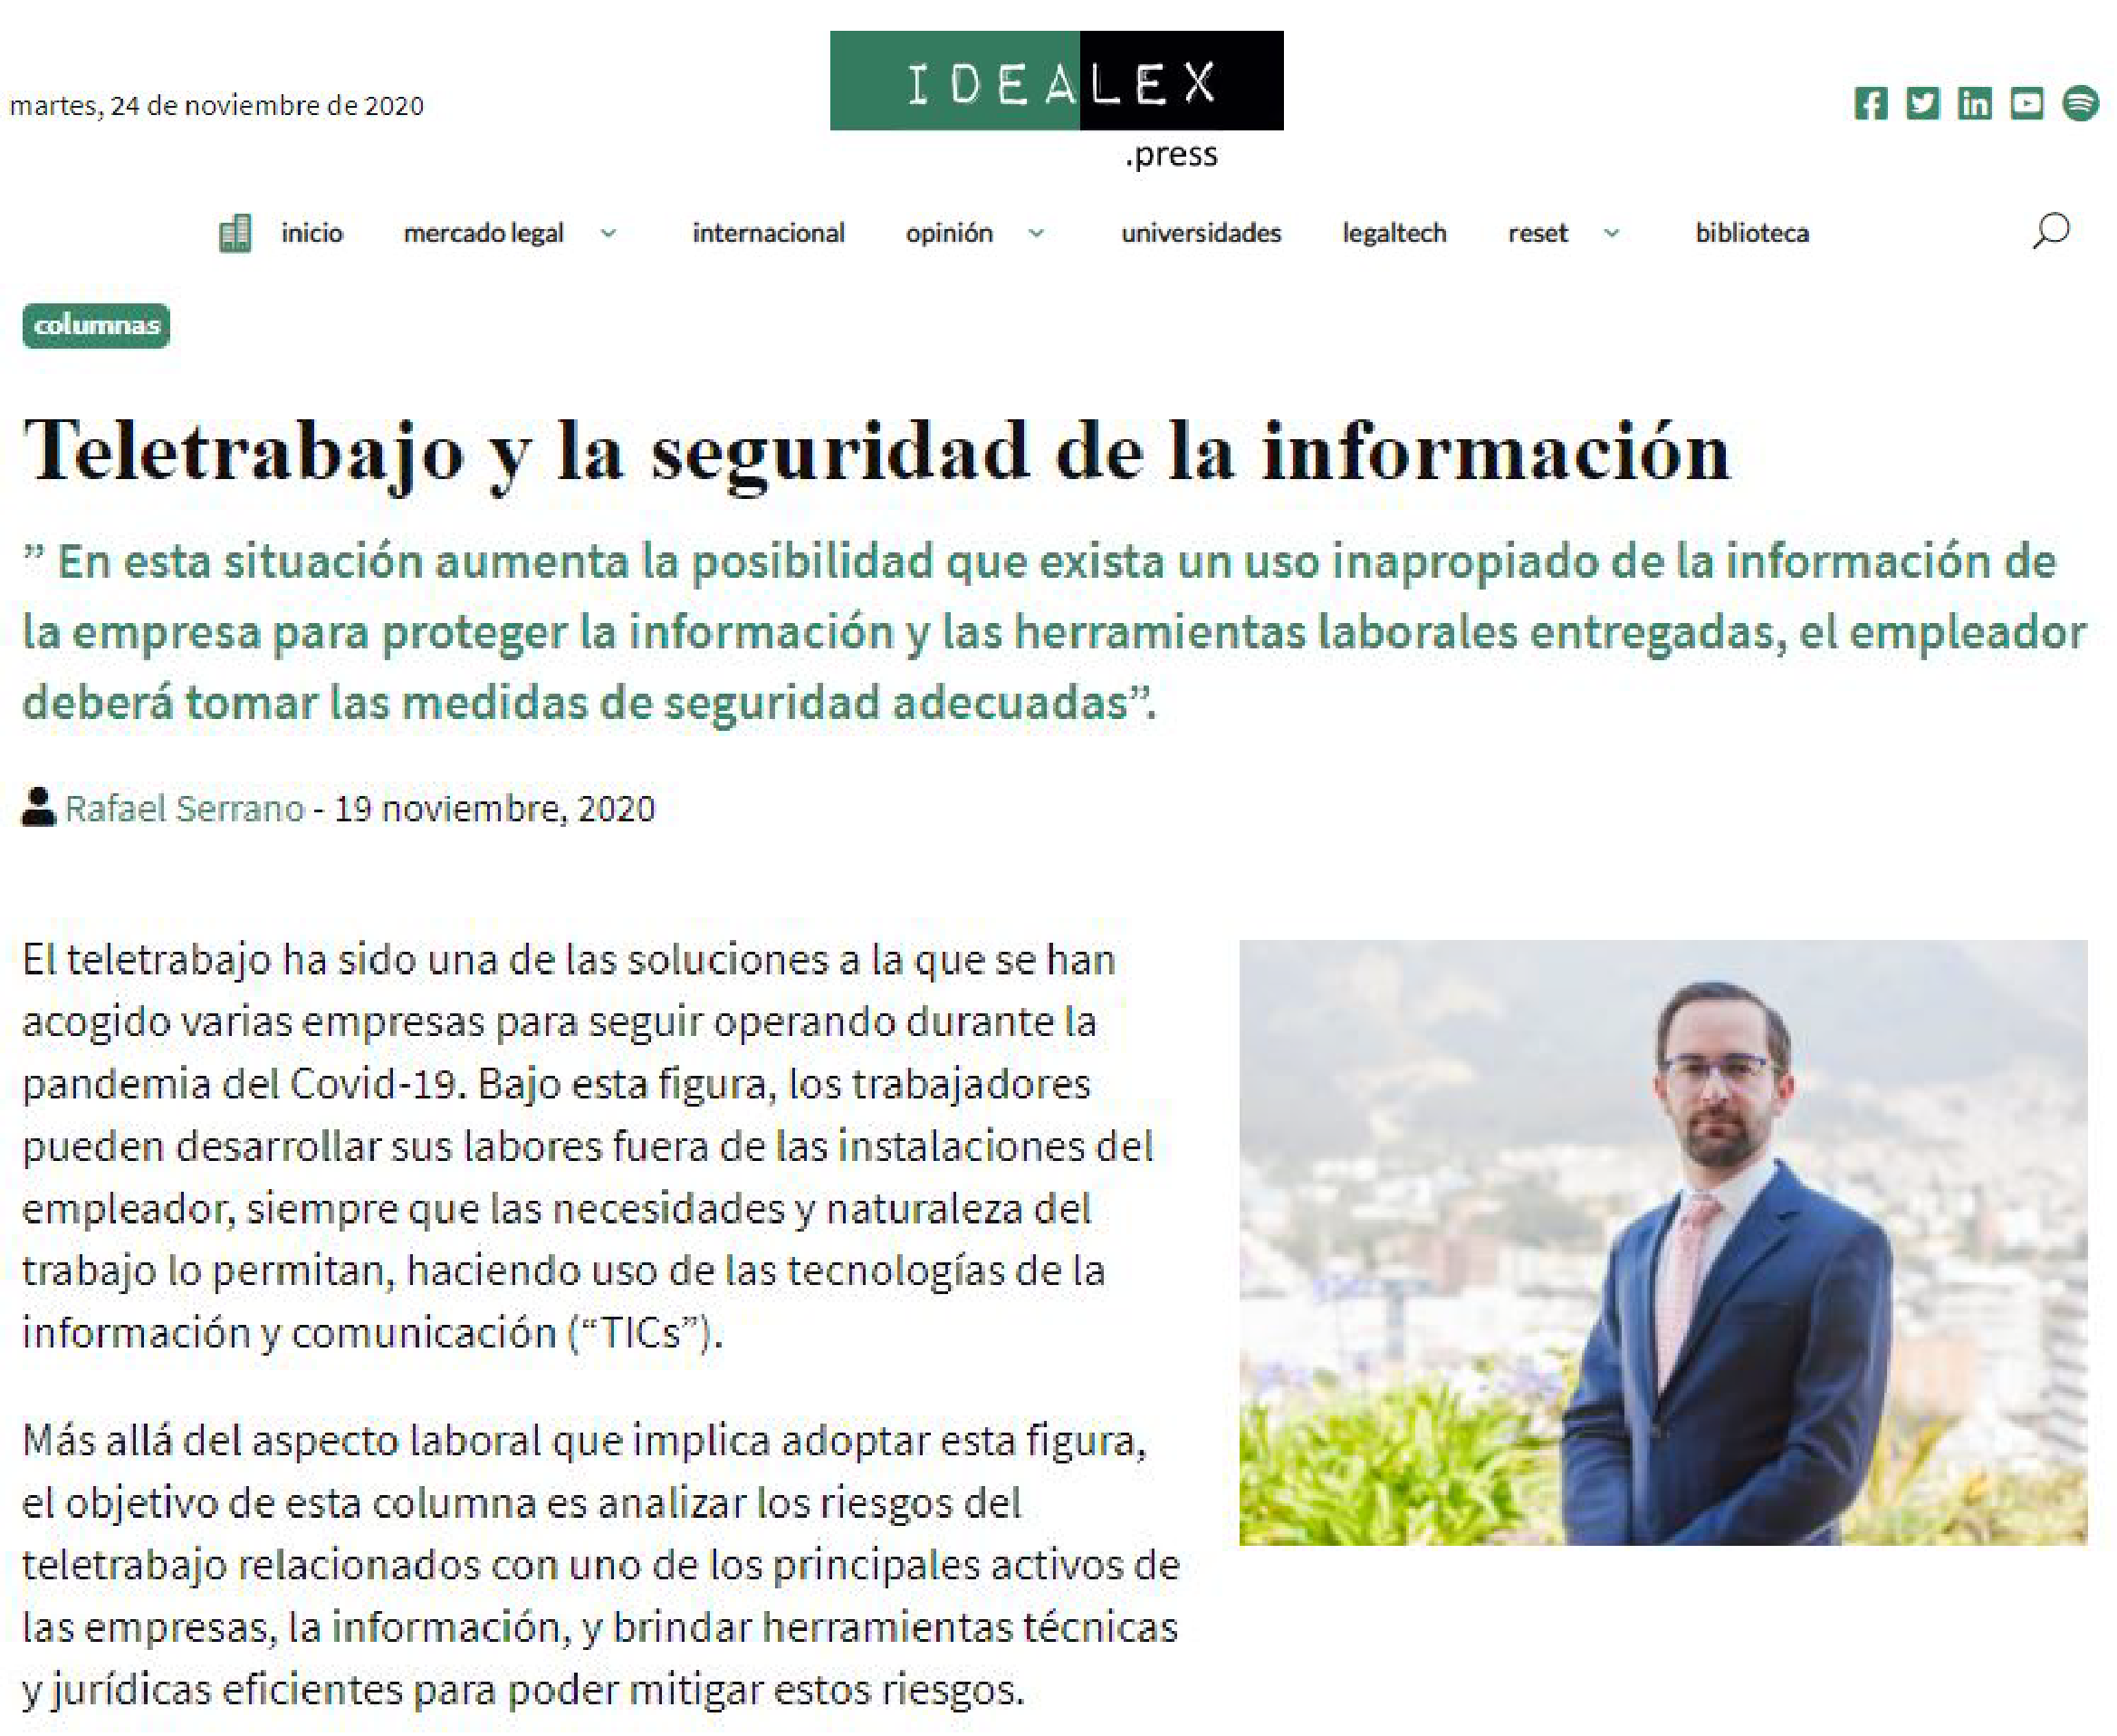 idealex-teleworking-and-information-security-lawyers-ecuador